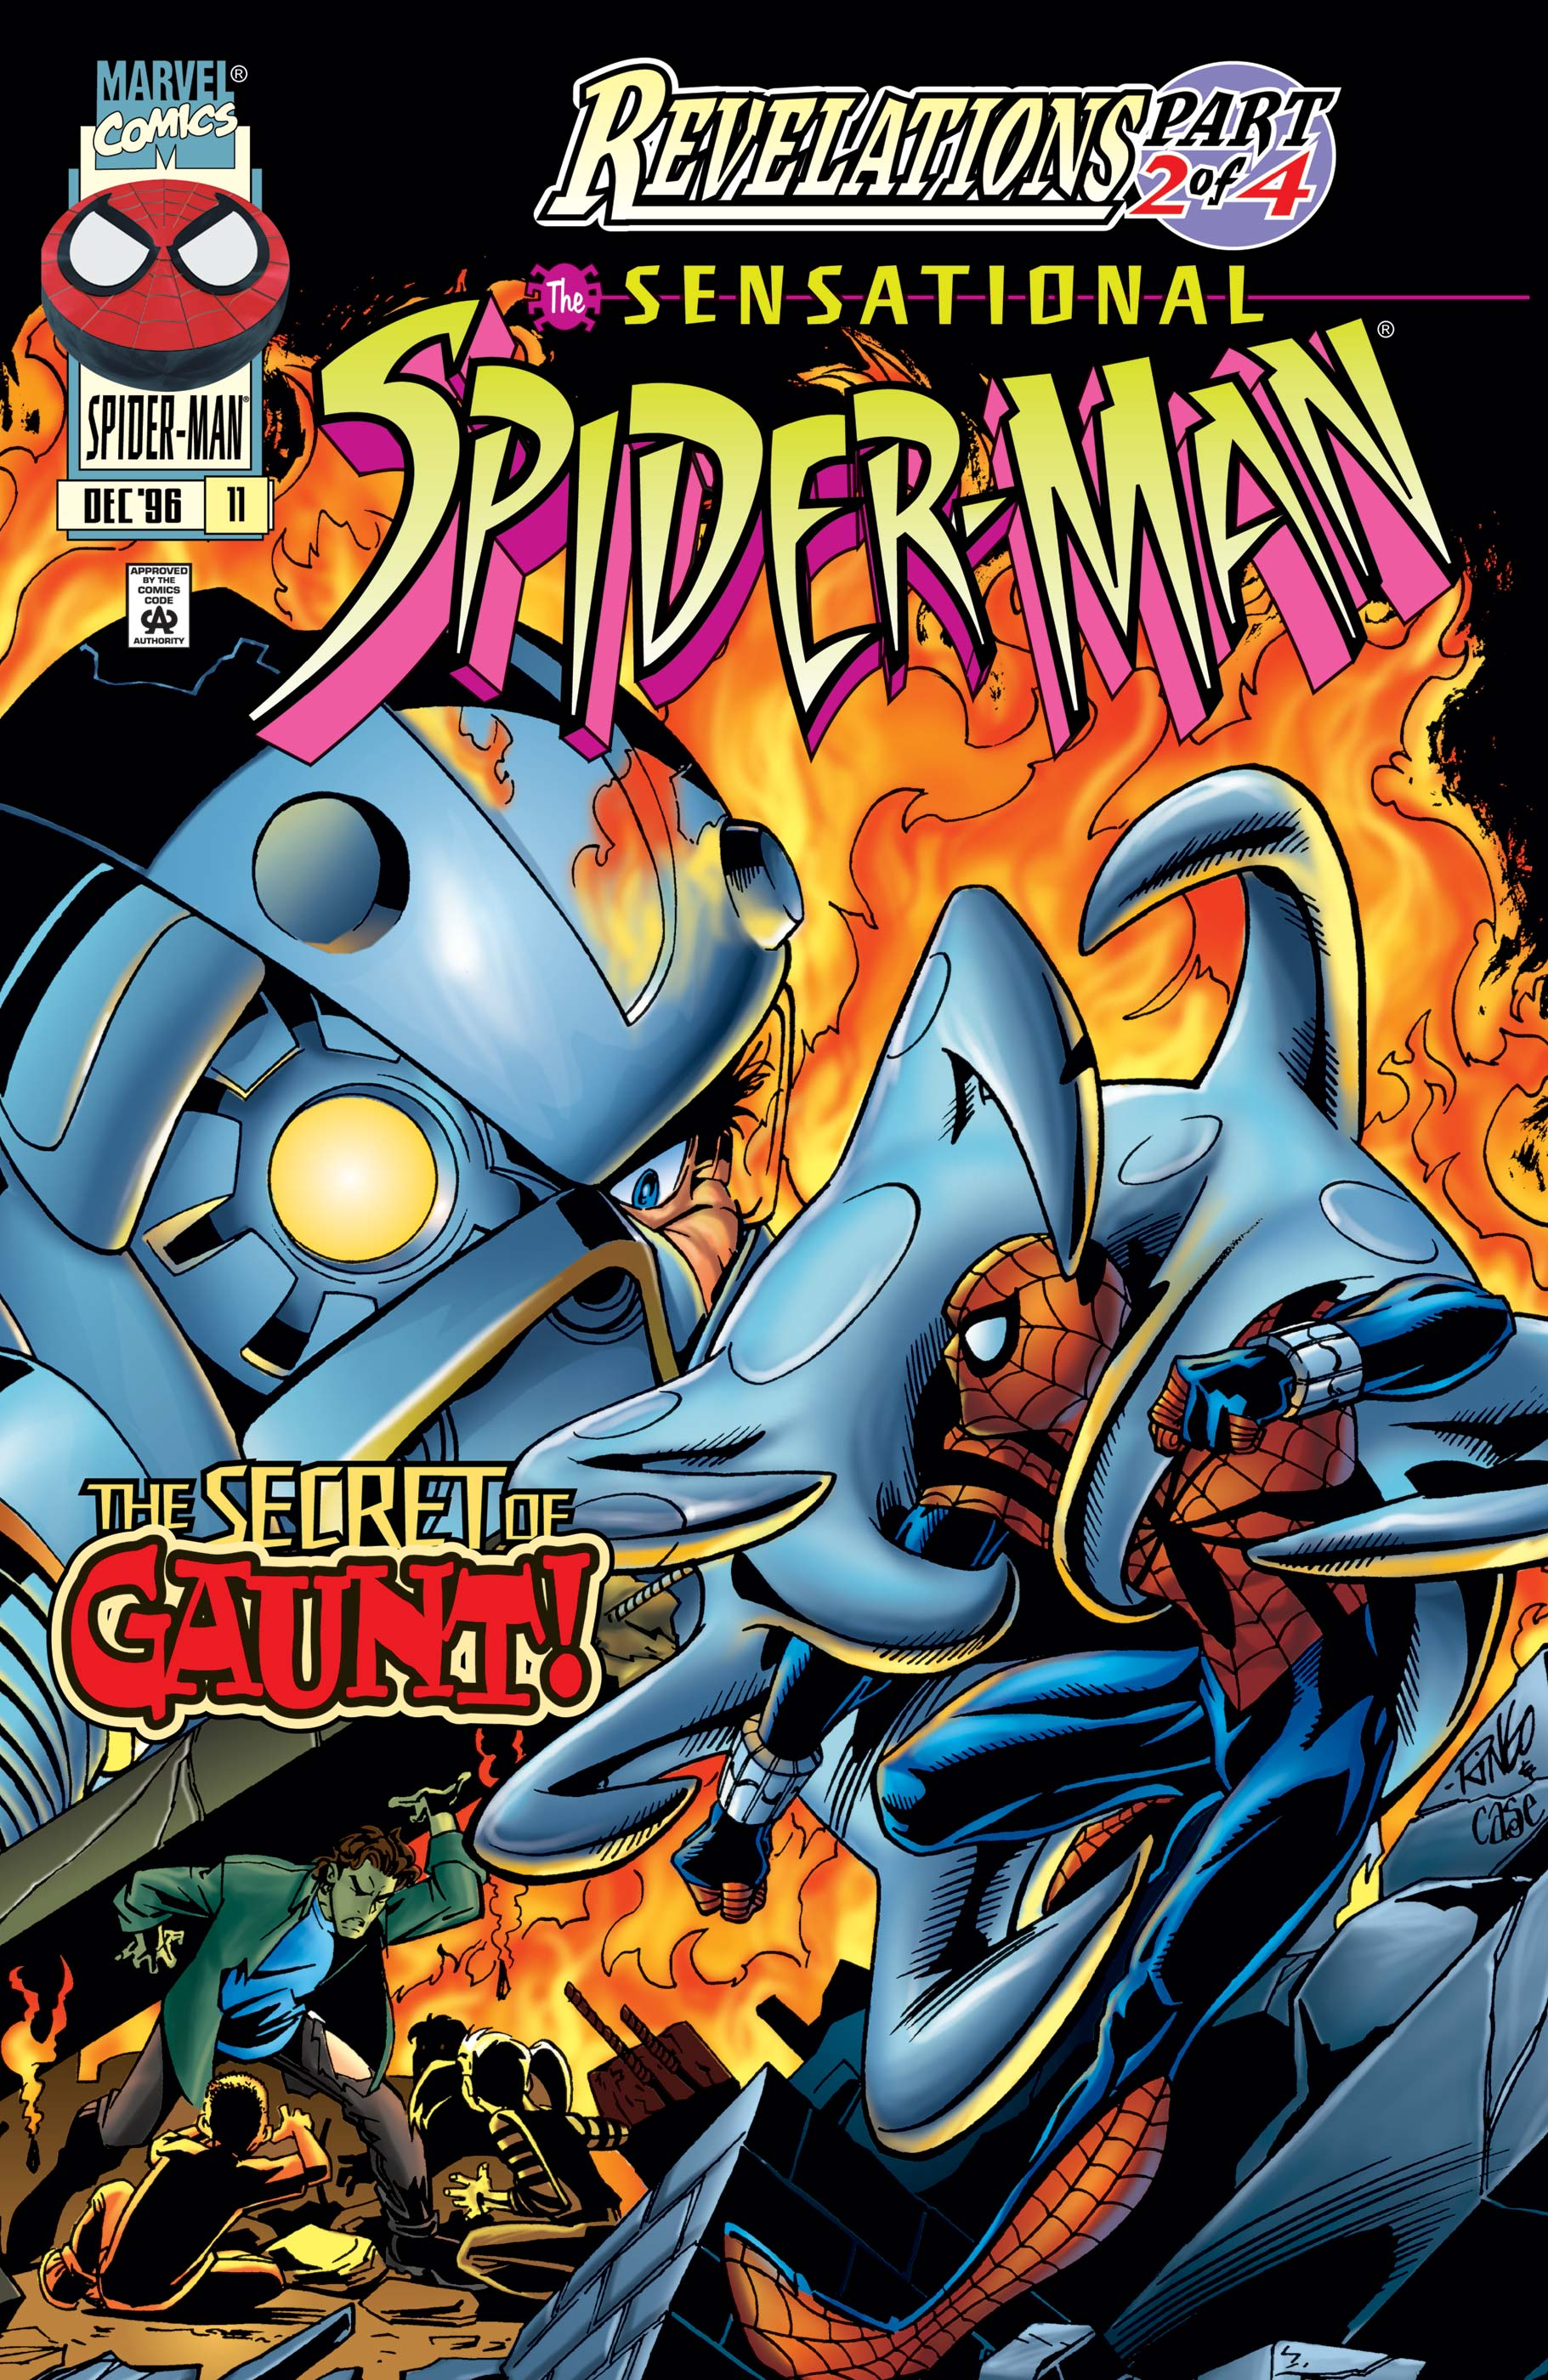 Sensational Spider-Man (1996) #11